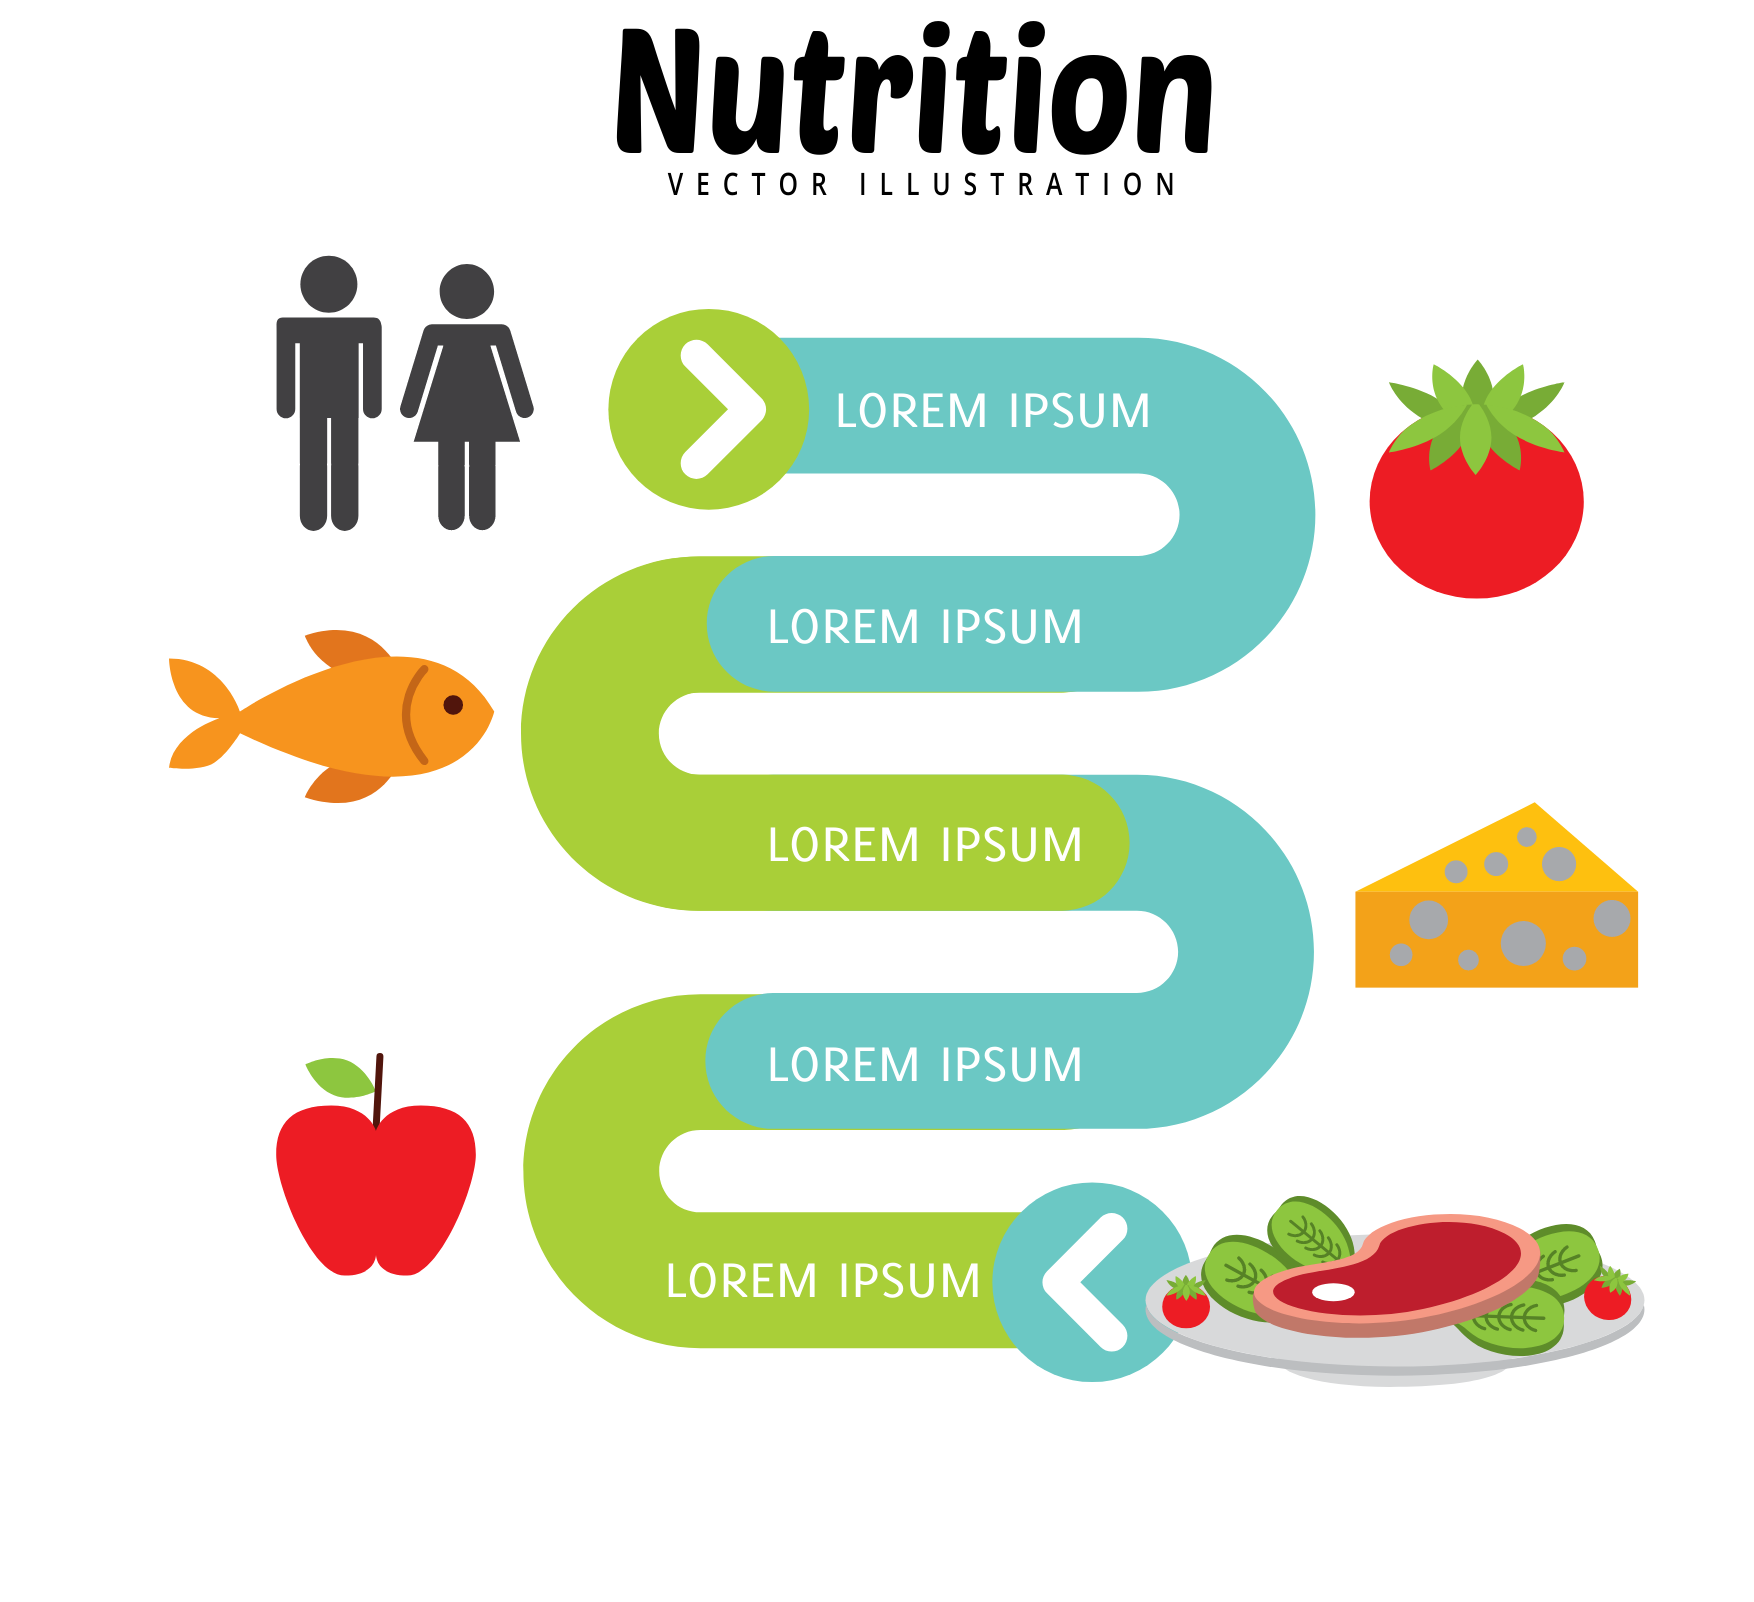 an infographic nutrition.